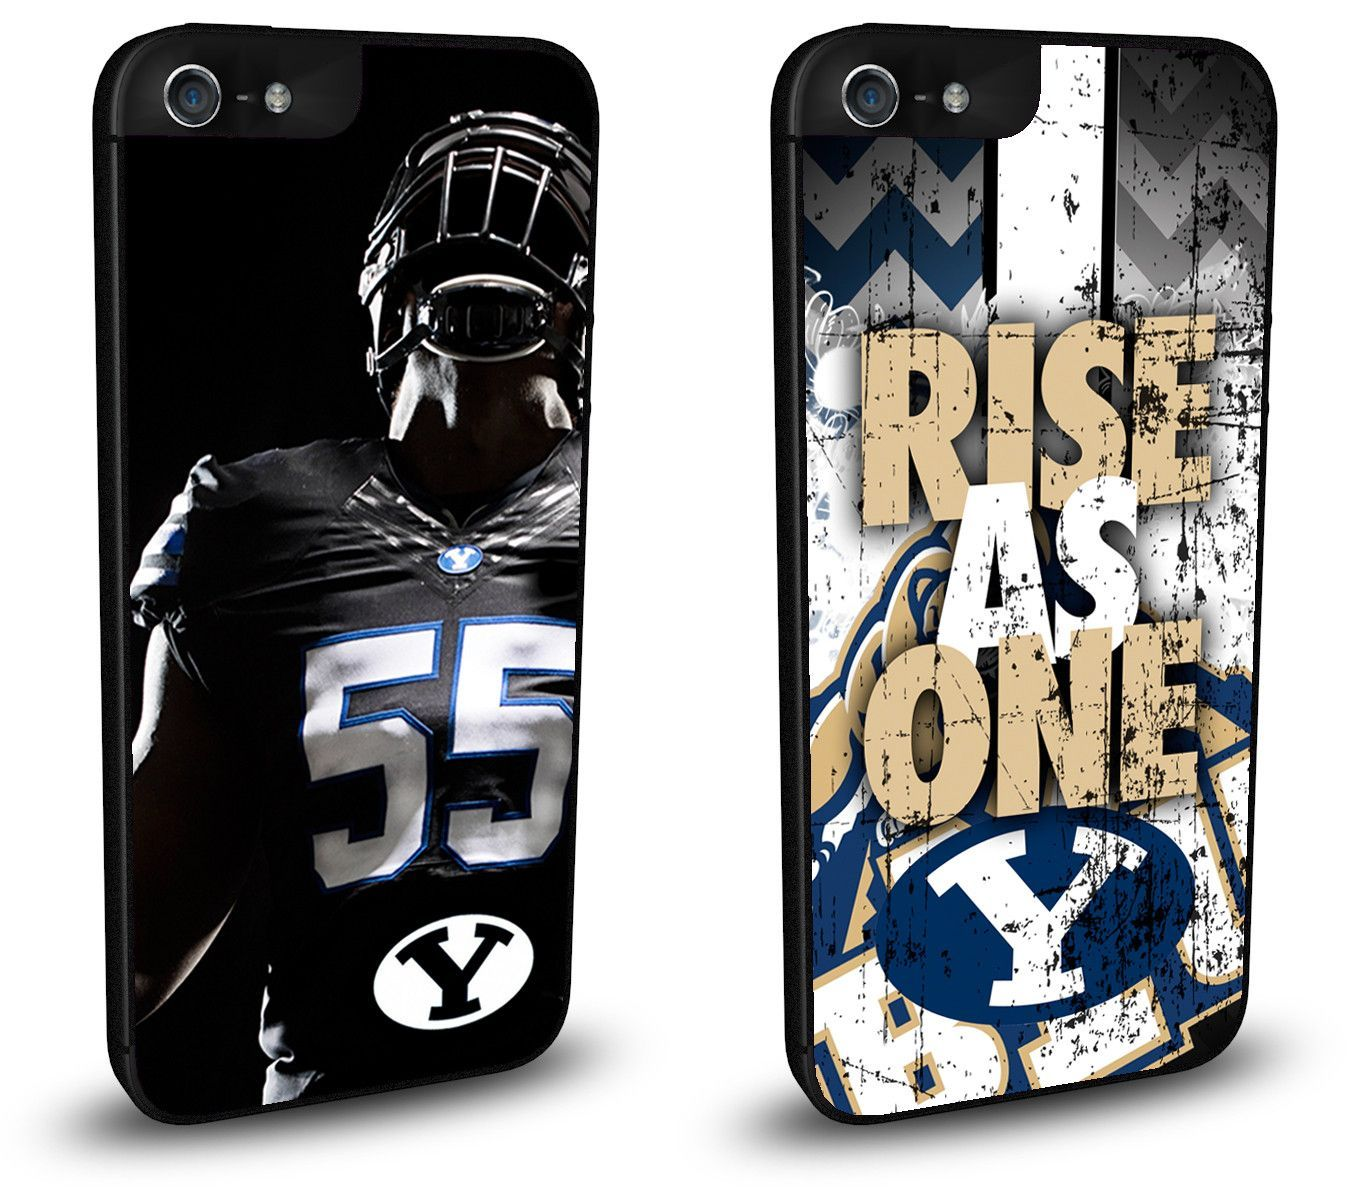 BYU Cougars Cell Phone Hard Case TWO PACK for iPhone 6, iPhone 6 Plus, iPhone 5/5s, iPhone SE, iPhone 4/4s or iPhone 5c